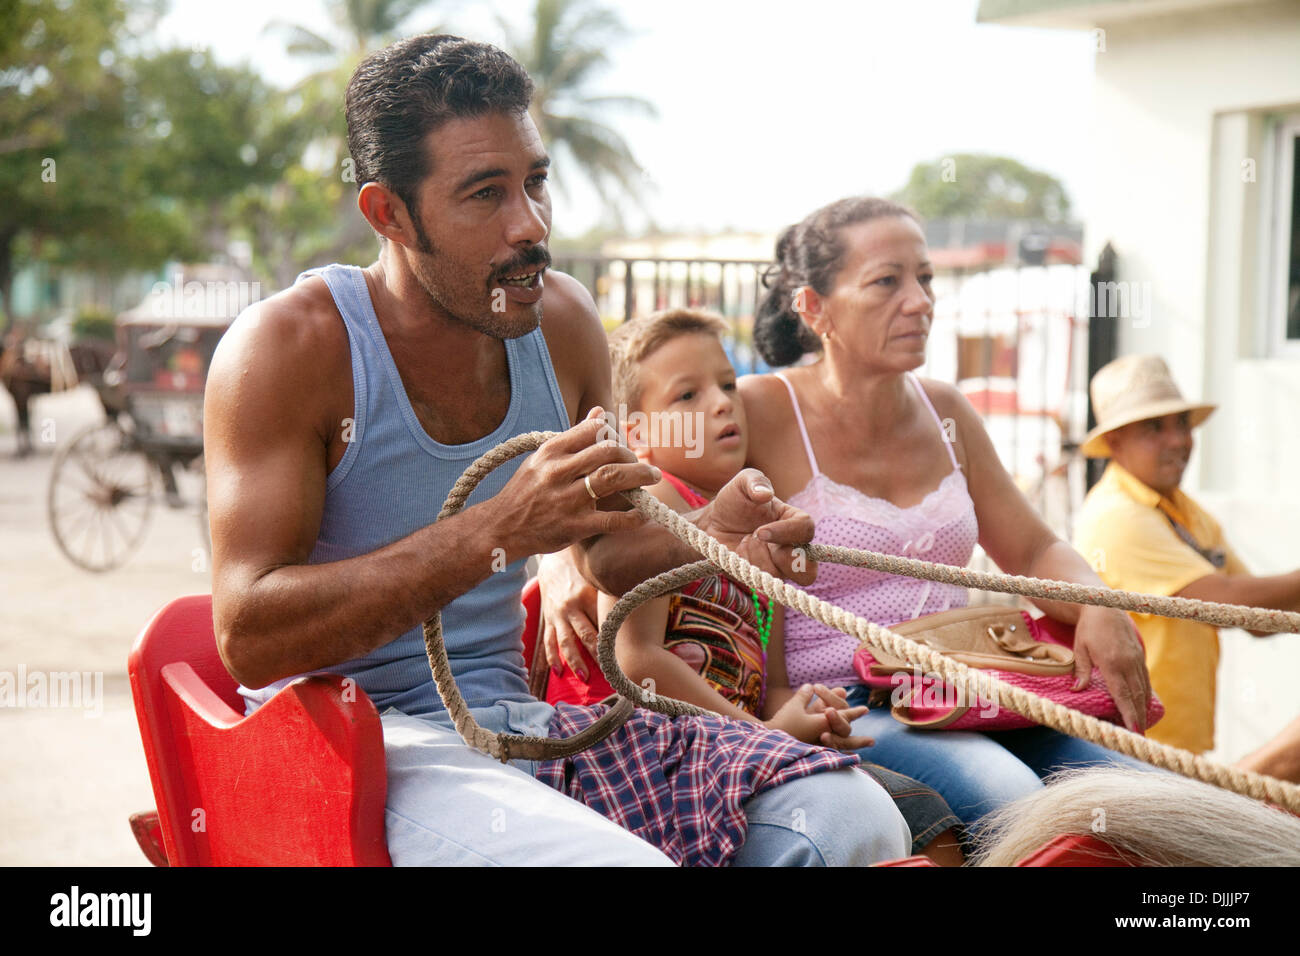 Cuba family - A cuban mother, father and son in a horse and carriage, Havana, Cuba, Caribbean, Latin America Stock Photo